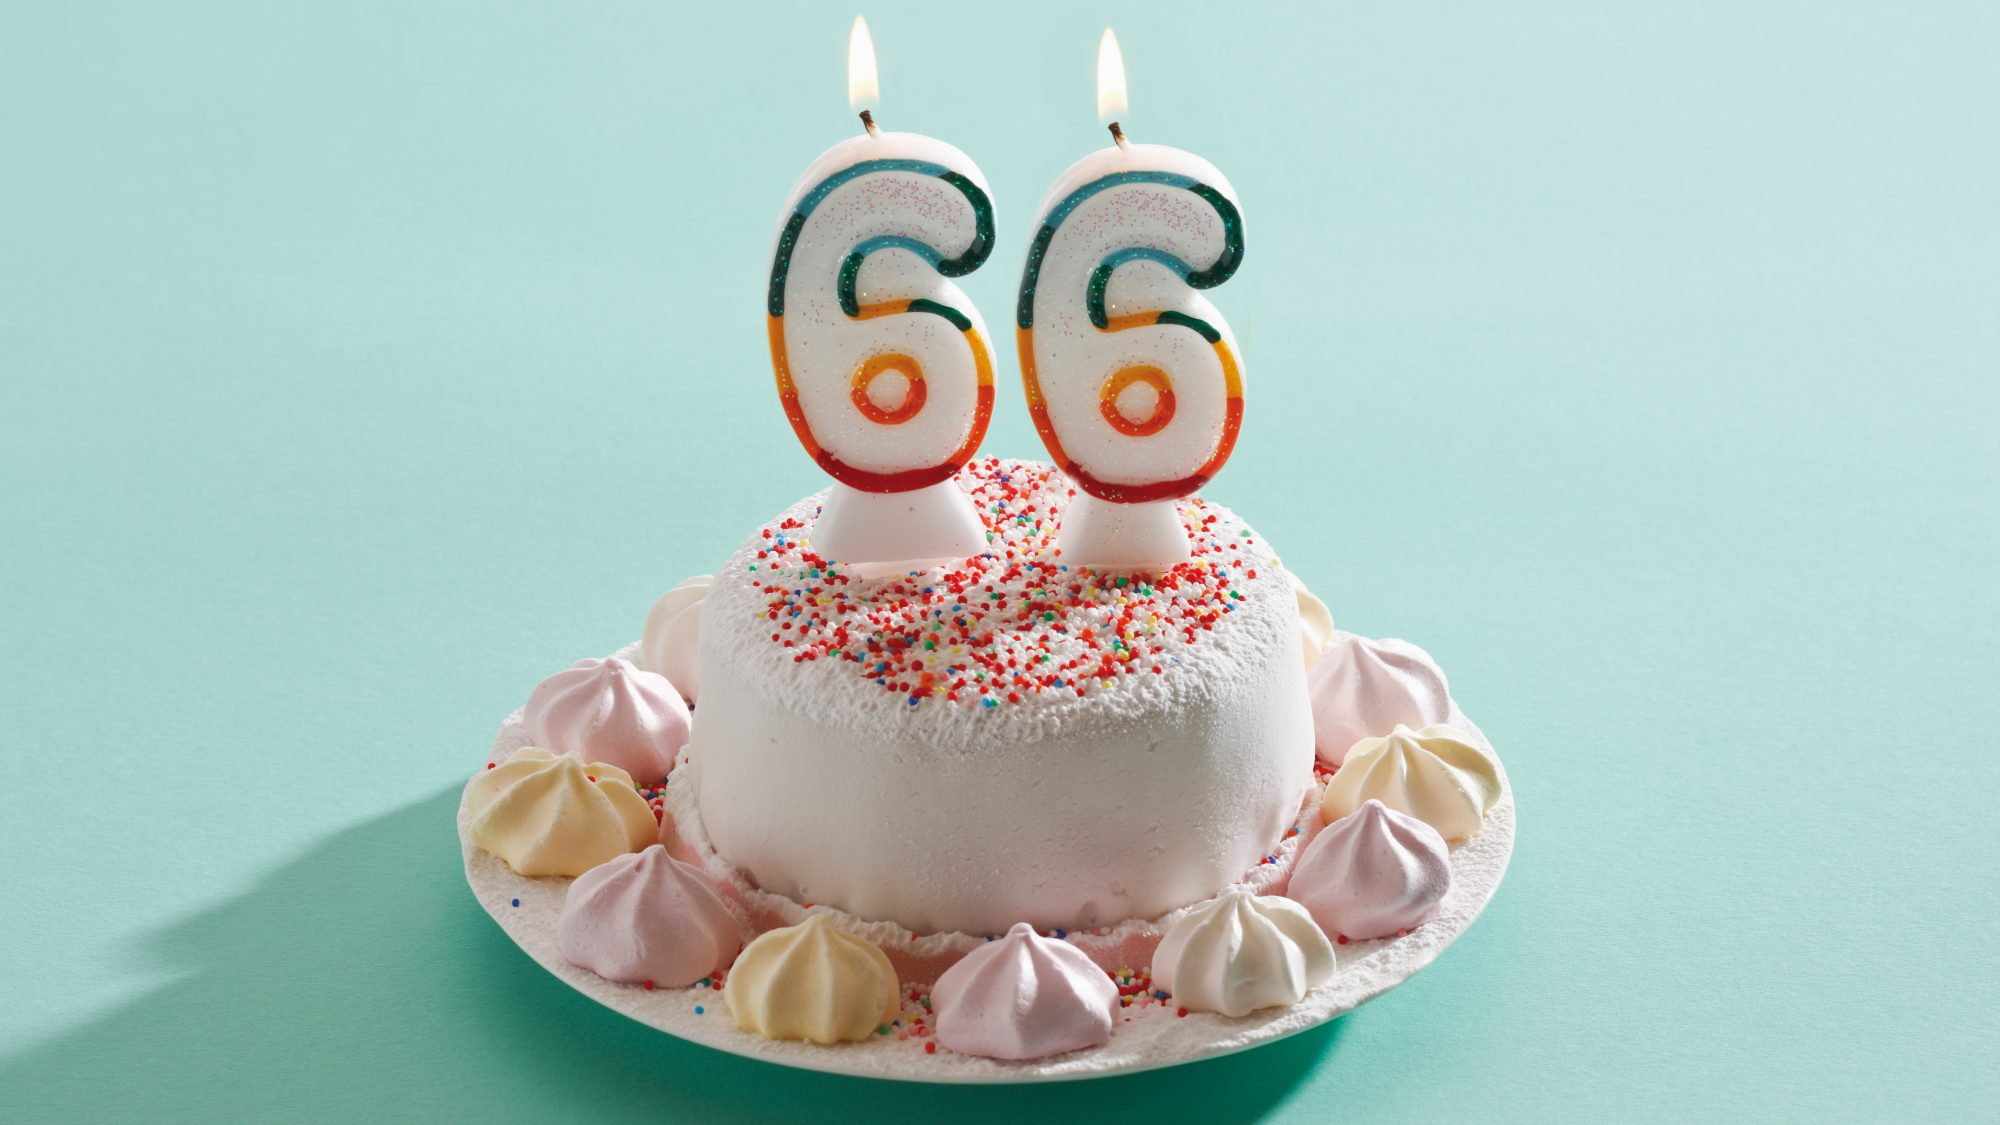 Financial peace of mind retirement study - cake with 66 on top